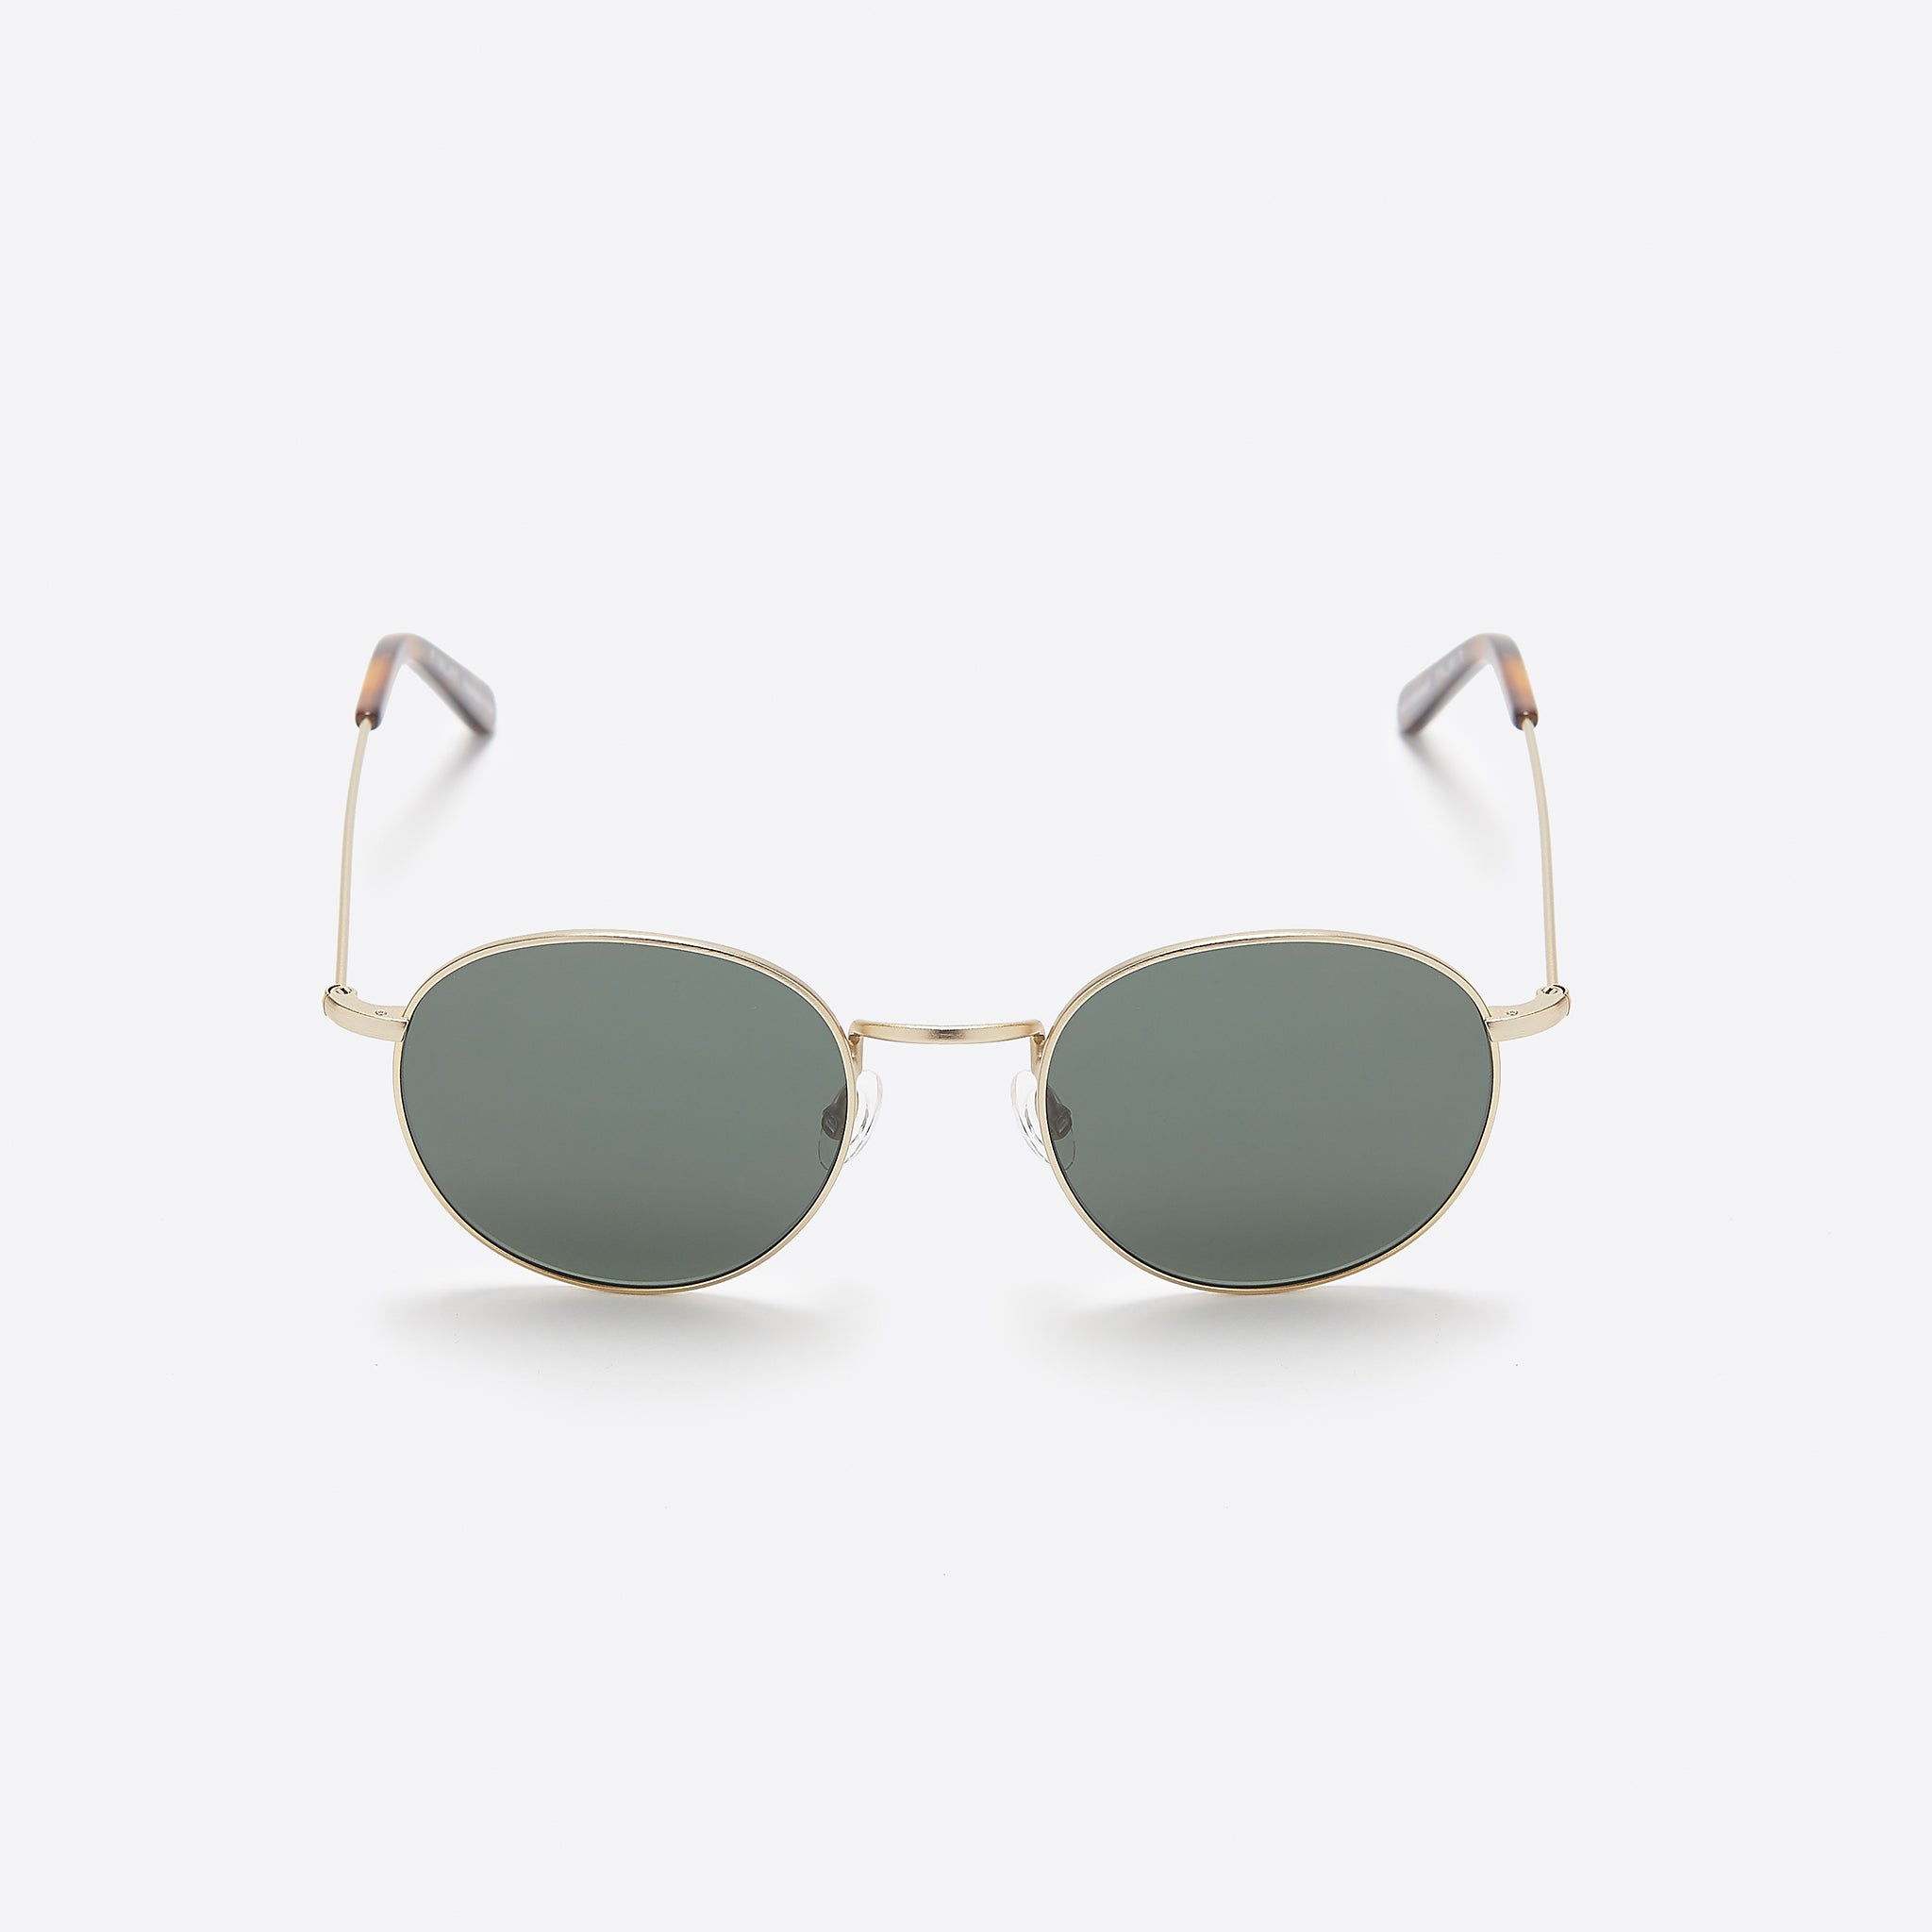 FINLAY London Oswald Sunglasses in Gold and Tortoise with Green Lenses